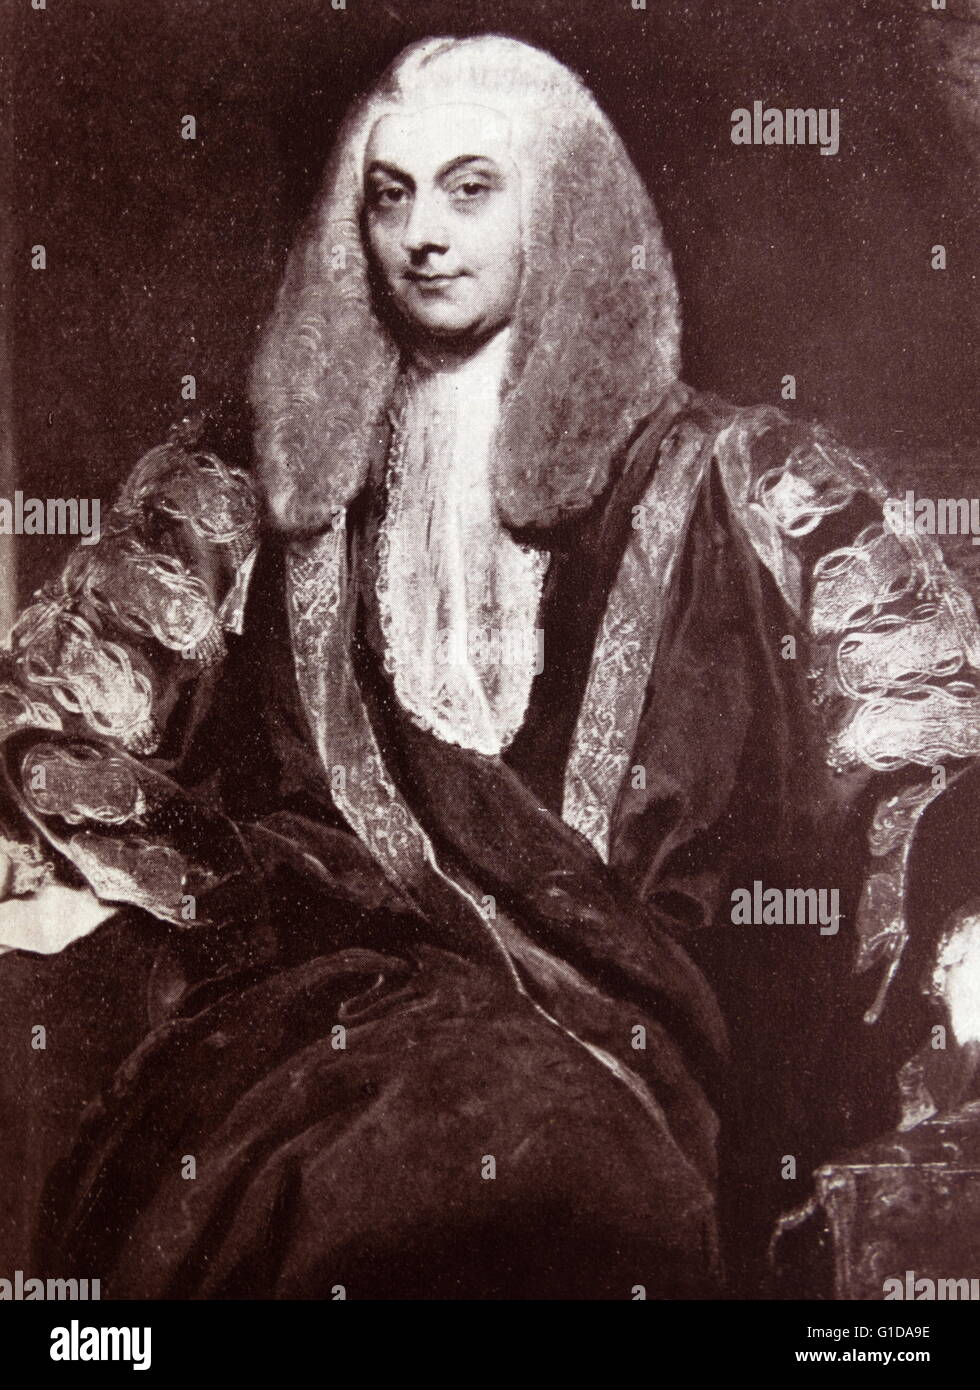 Sir John Freeman-Mitford (1748-1830) Speaker of the house of commons 1801-1802. Painting in the Speaker's house. - Stock Image